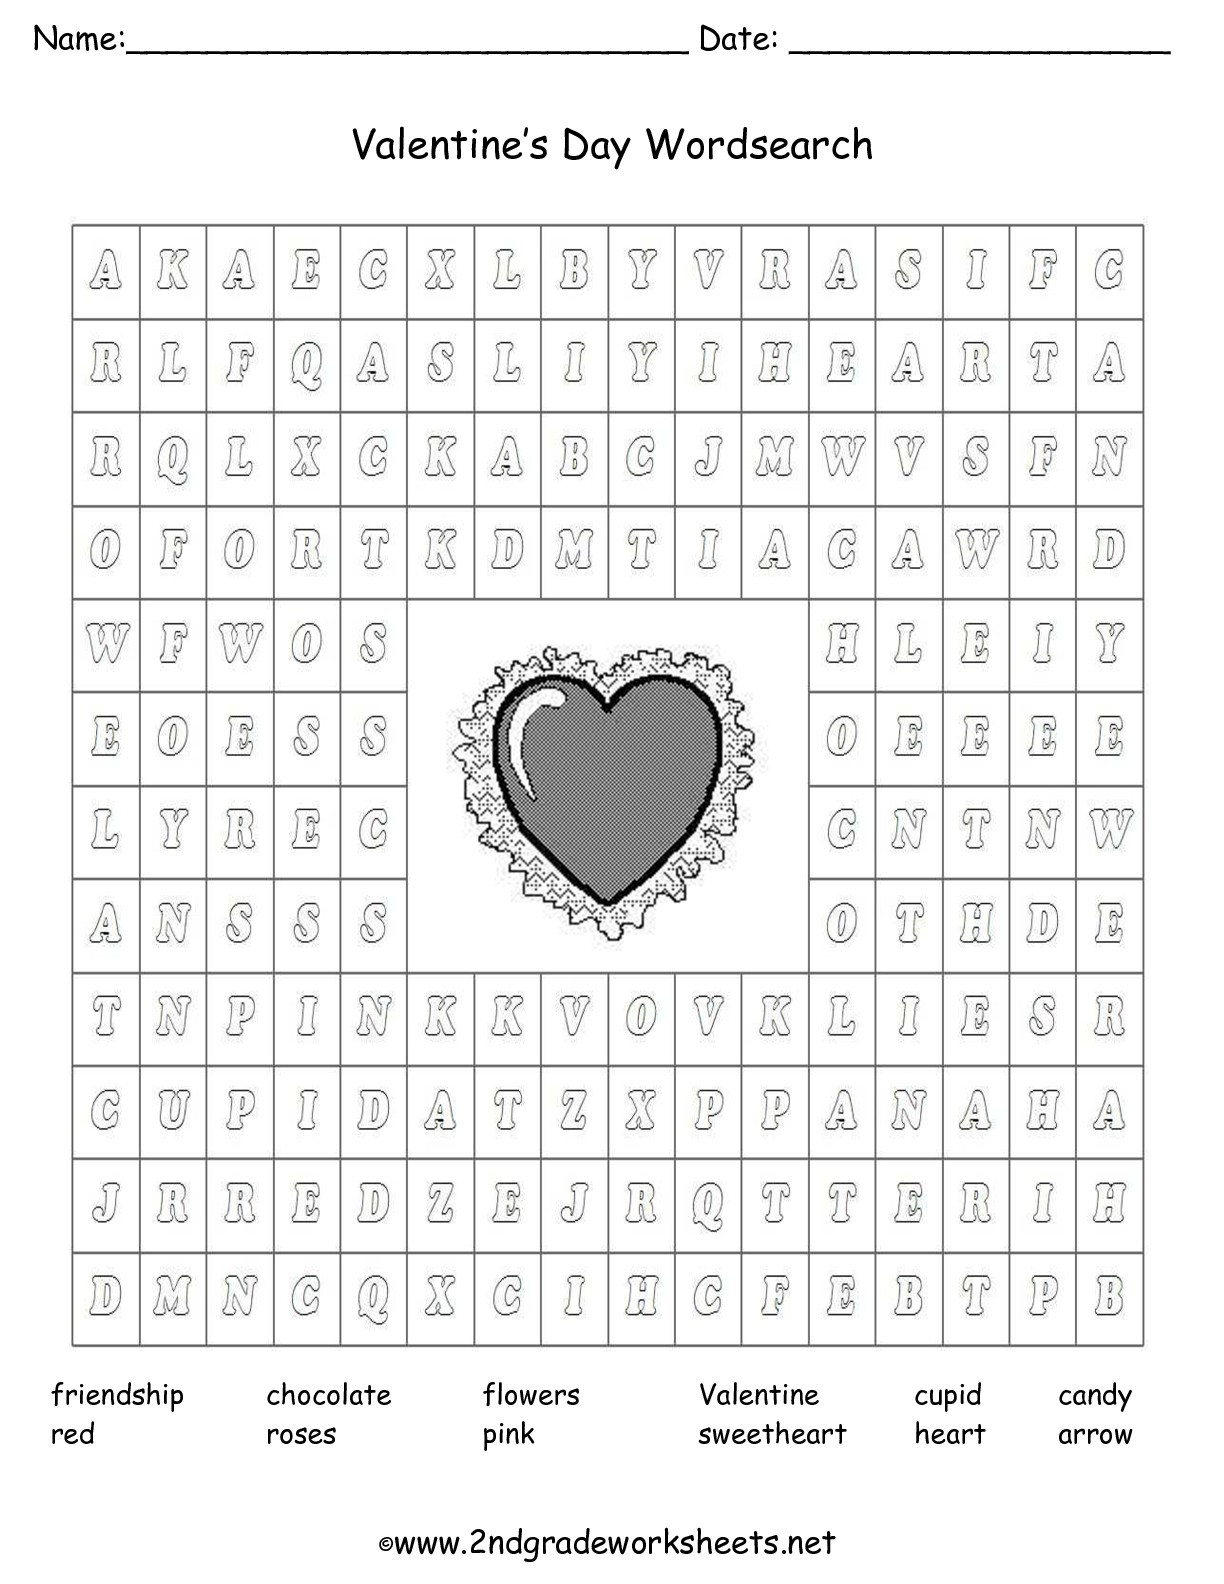 Valentines Day Reading Comprehension Worksheets Valentine S Day Printouts and Worksheets